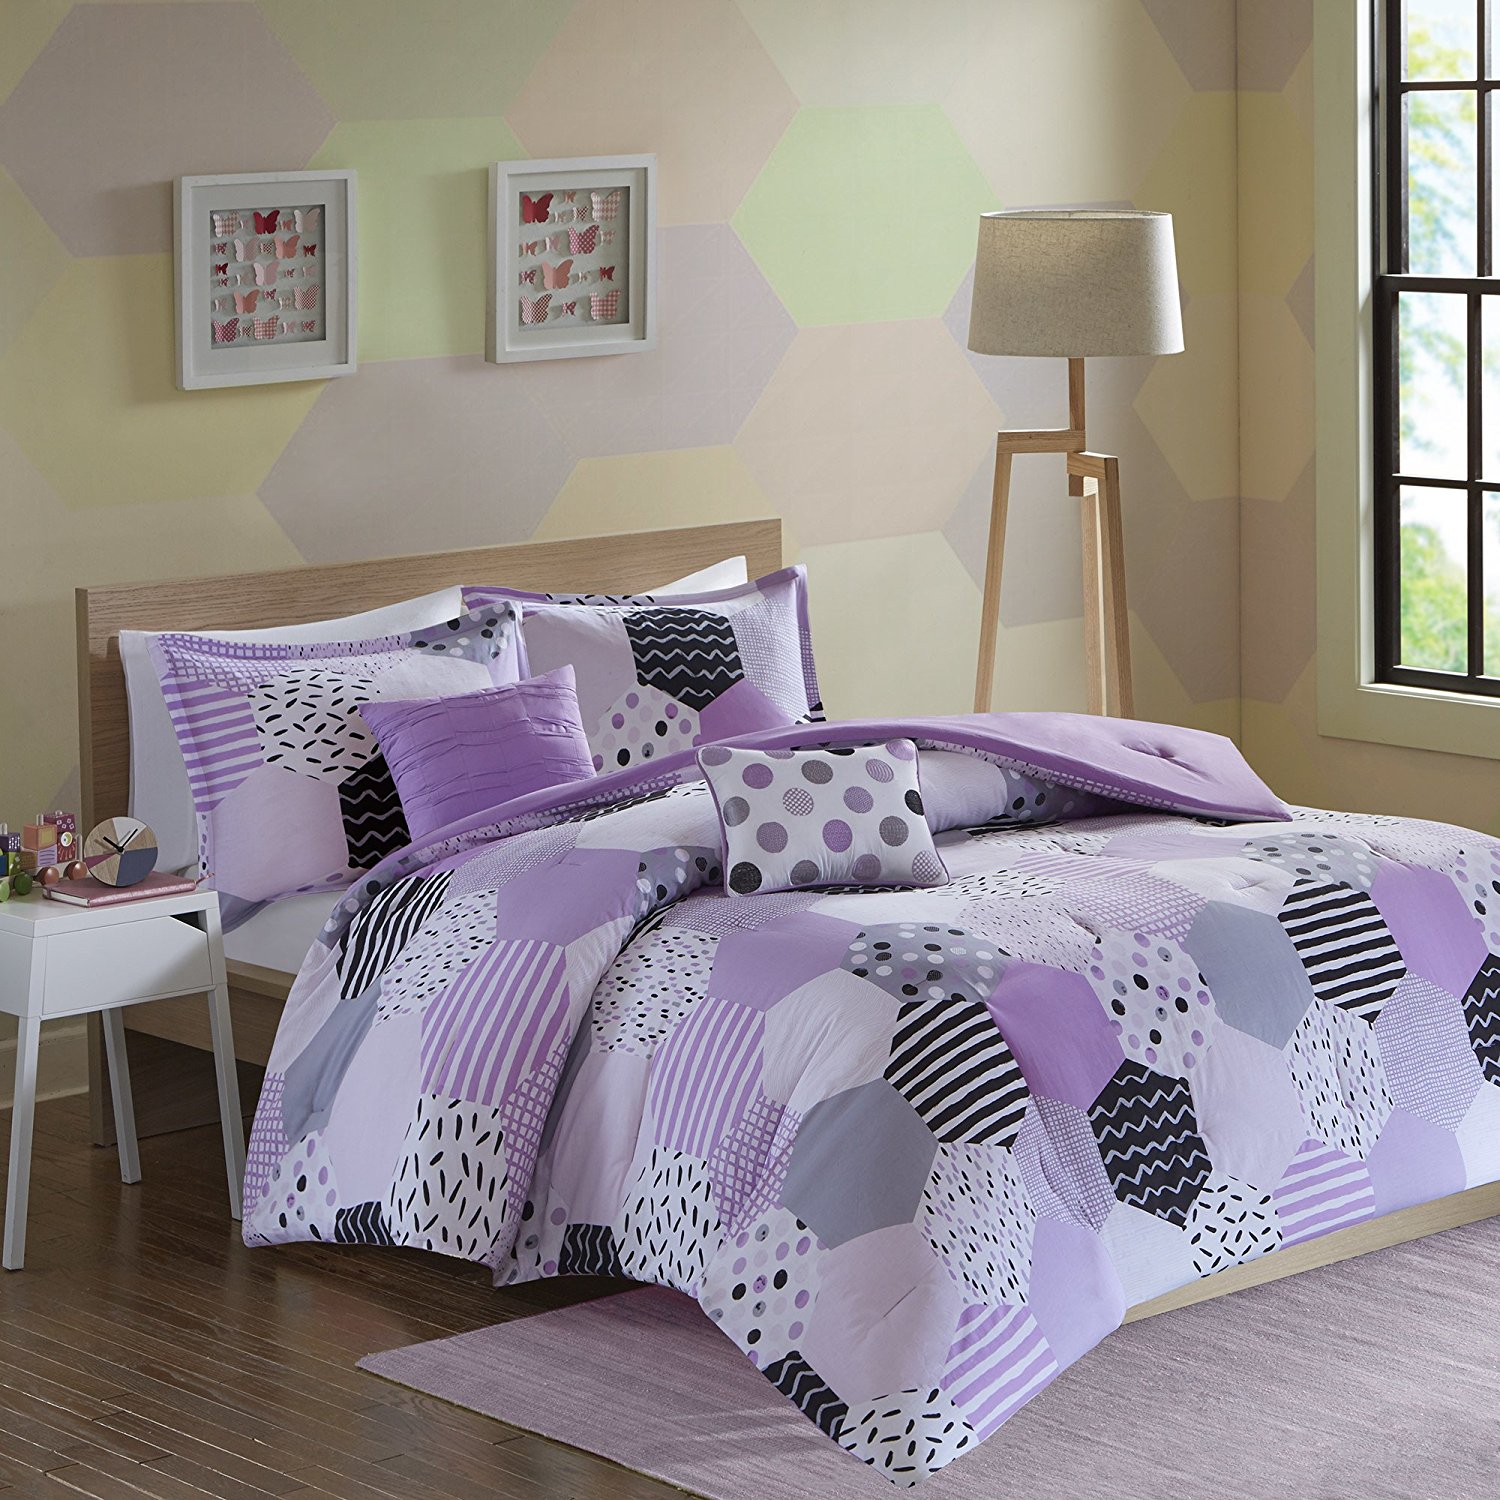 PH 5 Piece Girls Purple Grey Geometric Comforter Full Queen Set, White Black Stripe Dots Motif Weave Design Hexagon Solid Color Reversible Kids Bedding Teen Bedroom Casual Elegant Cozy, Cotton